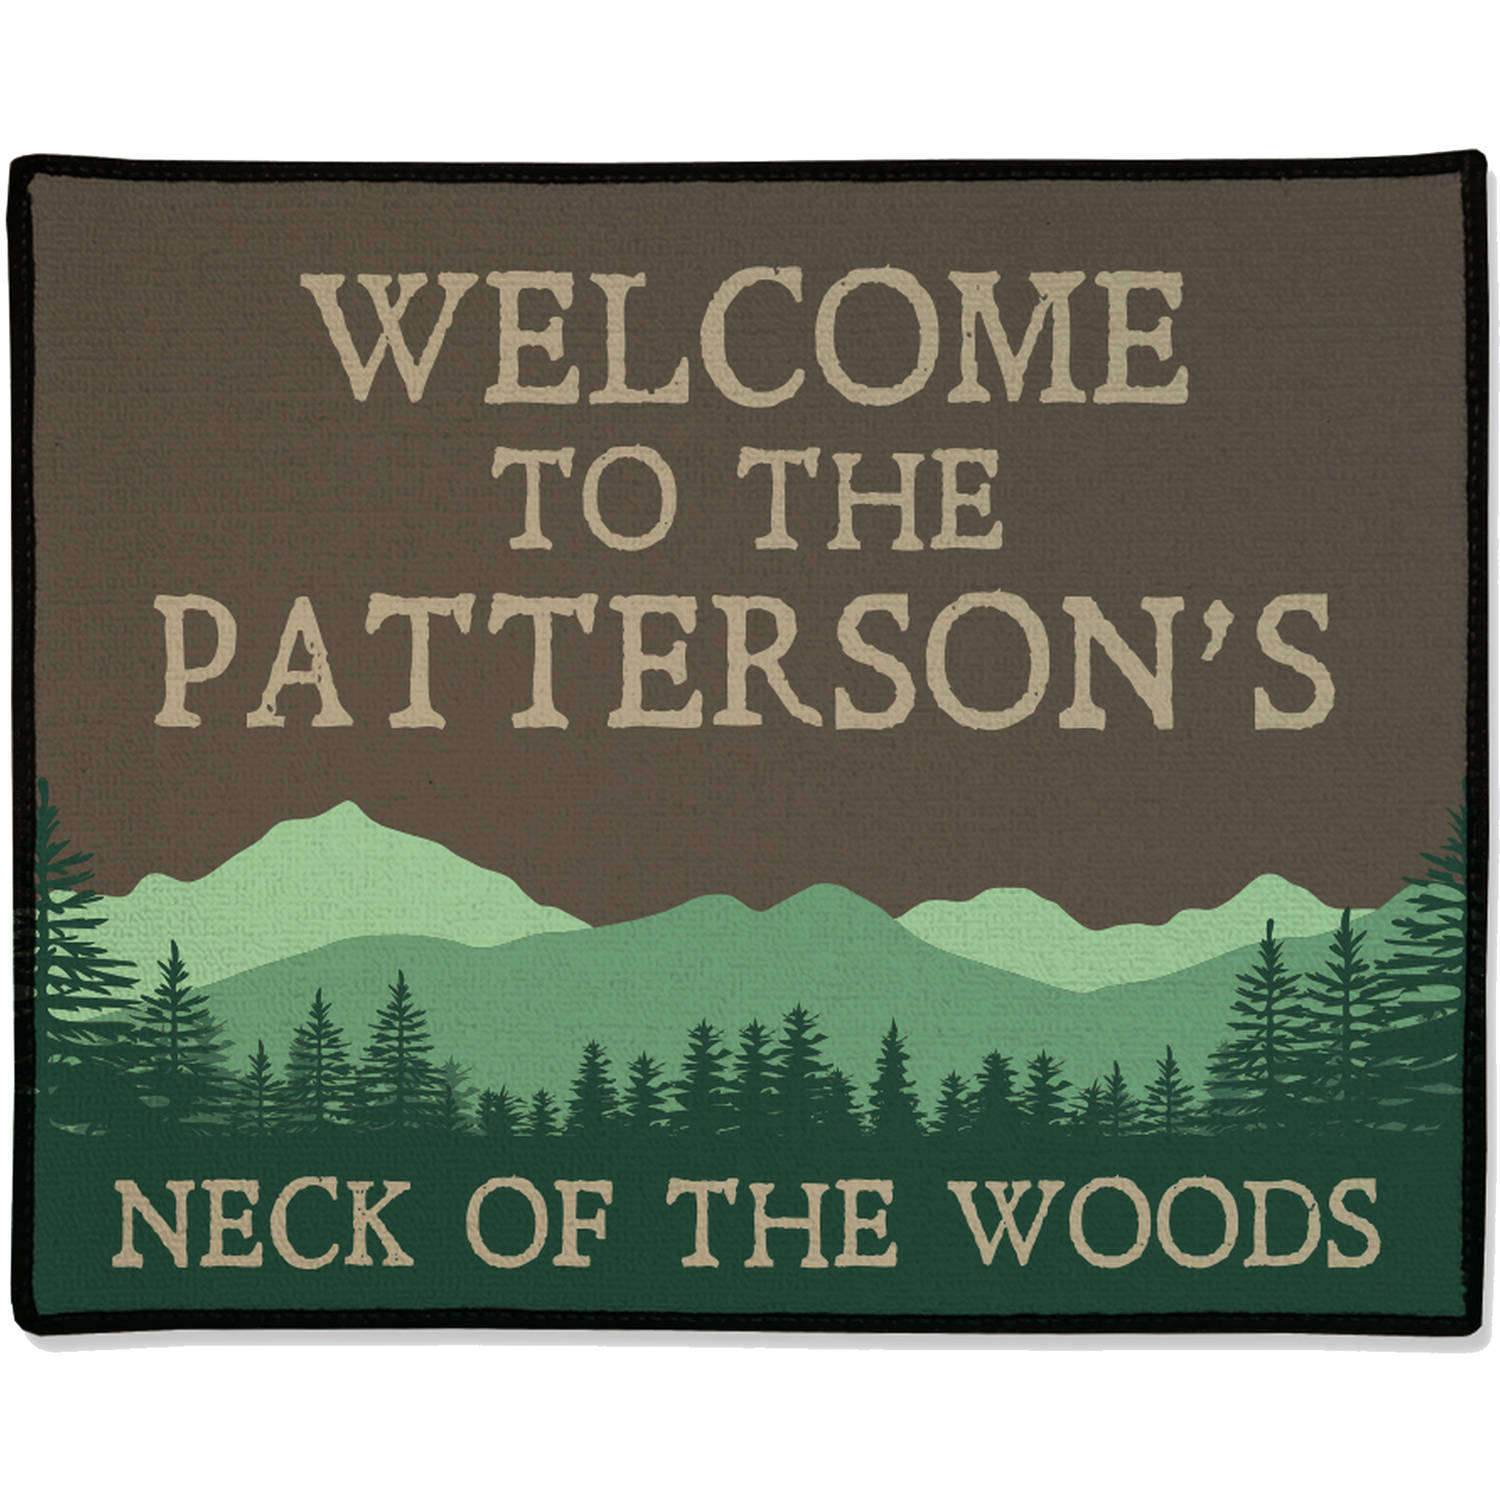 "Personalized Mountains & Trees Welcome Doormat, 19.5"" x 15.5"""